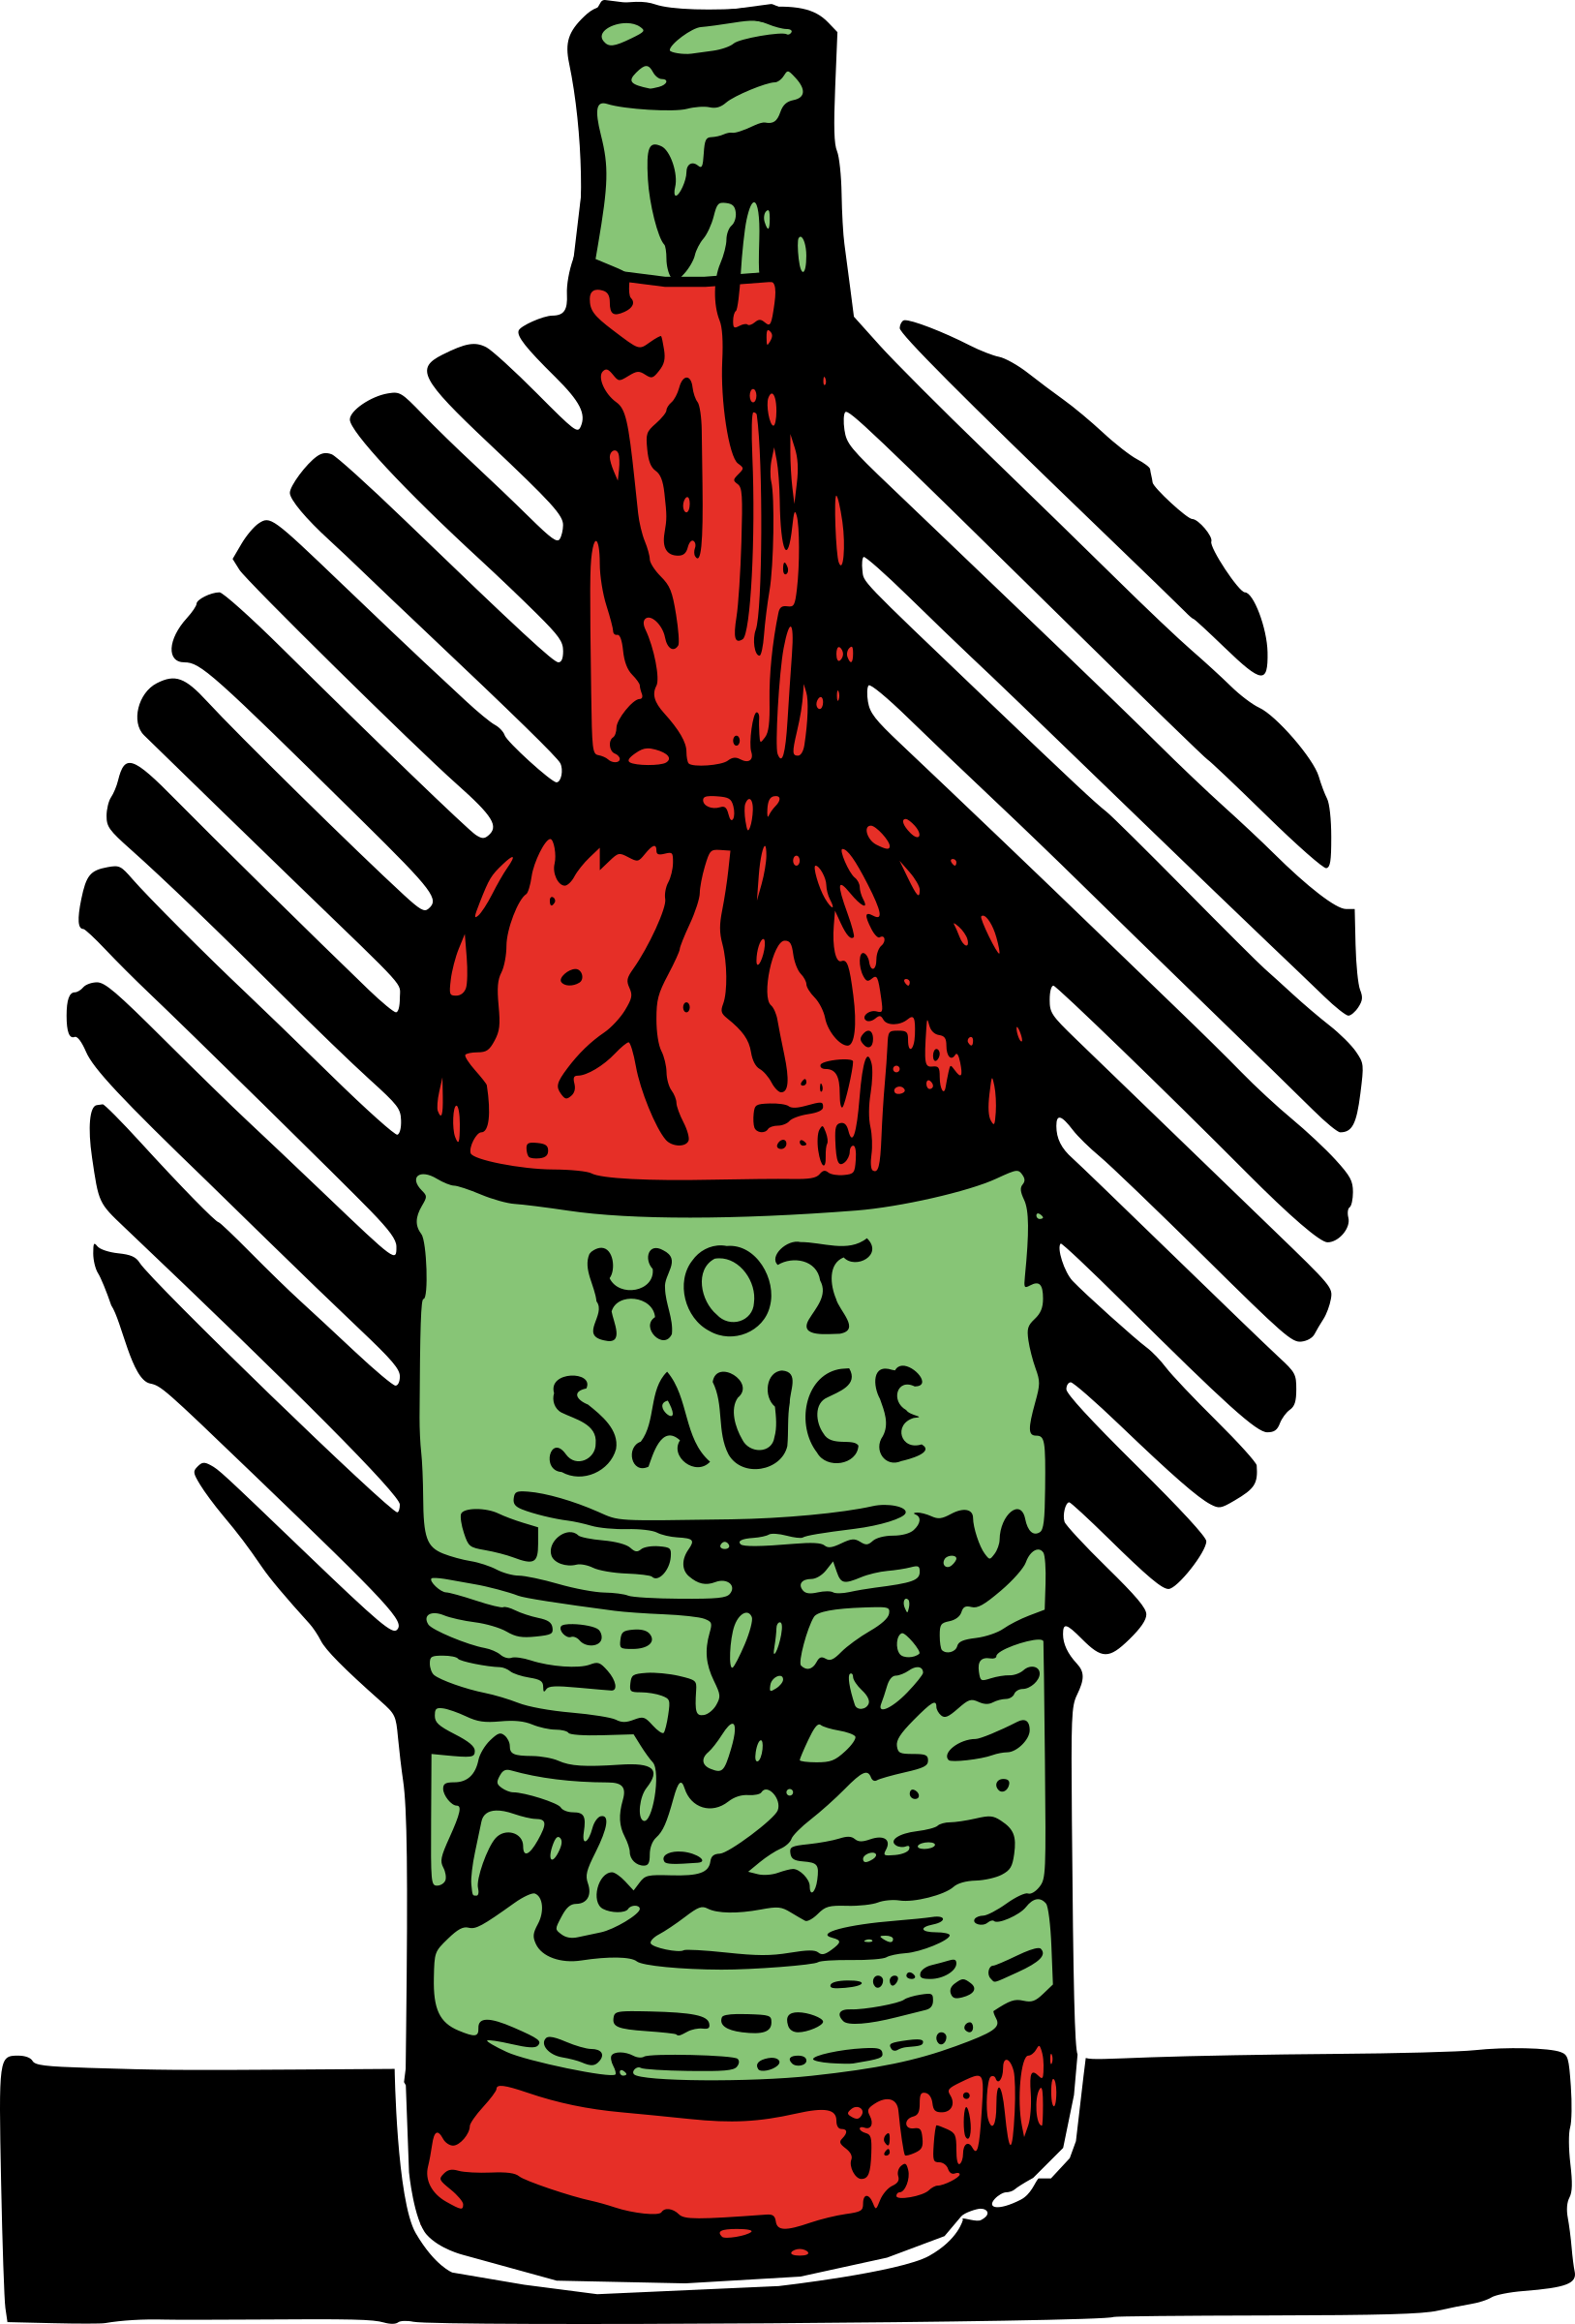 Hot Sauce by j4p4n